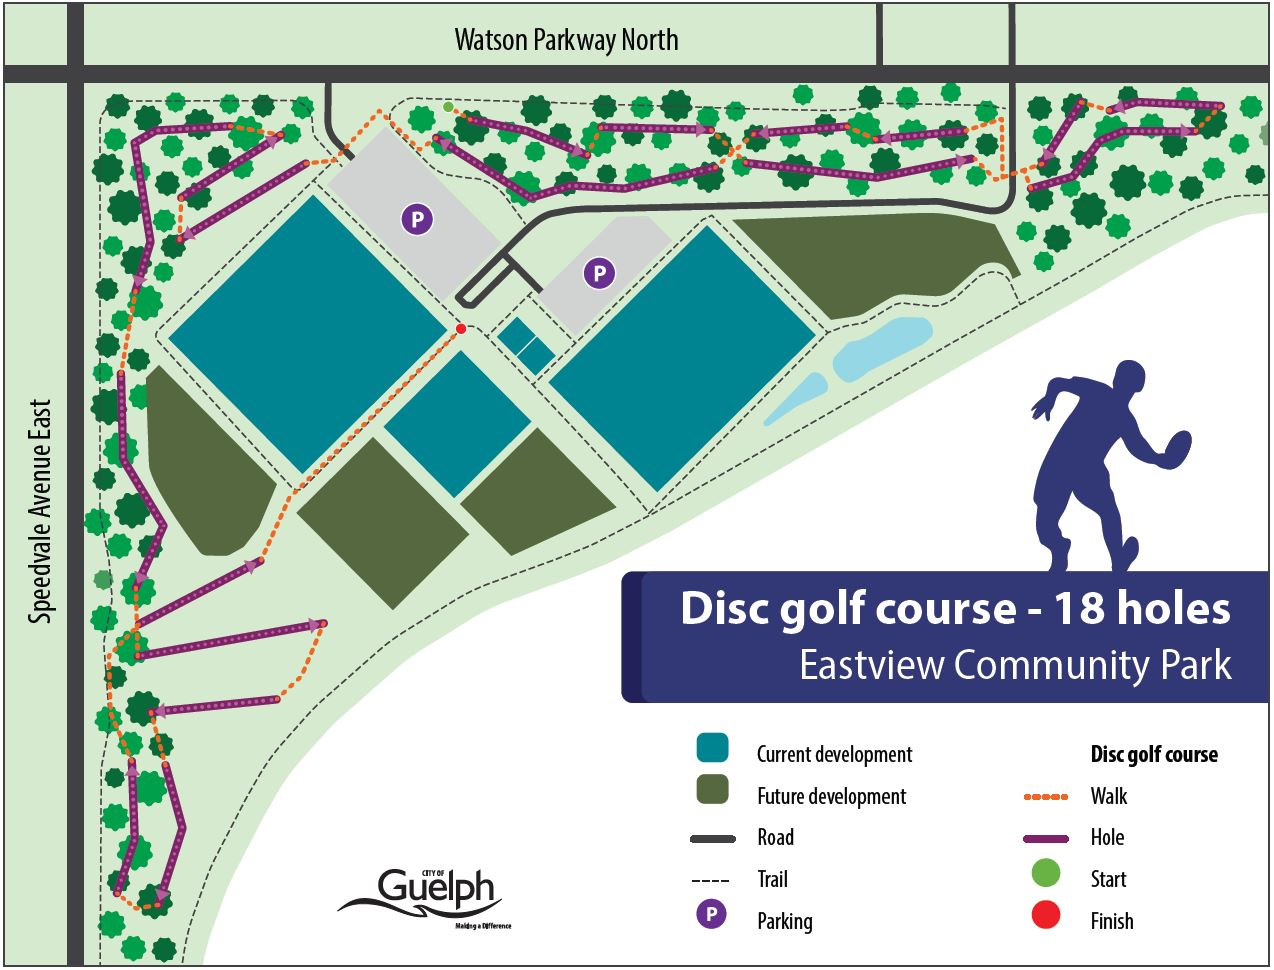 Map of Eastview Community park showing the proposed layout of the disc golf course, primarily throughout the treed areas along Speedvale and Watson Parkway